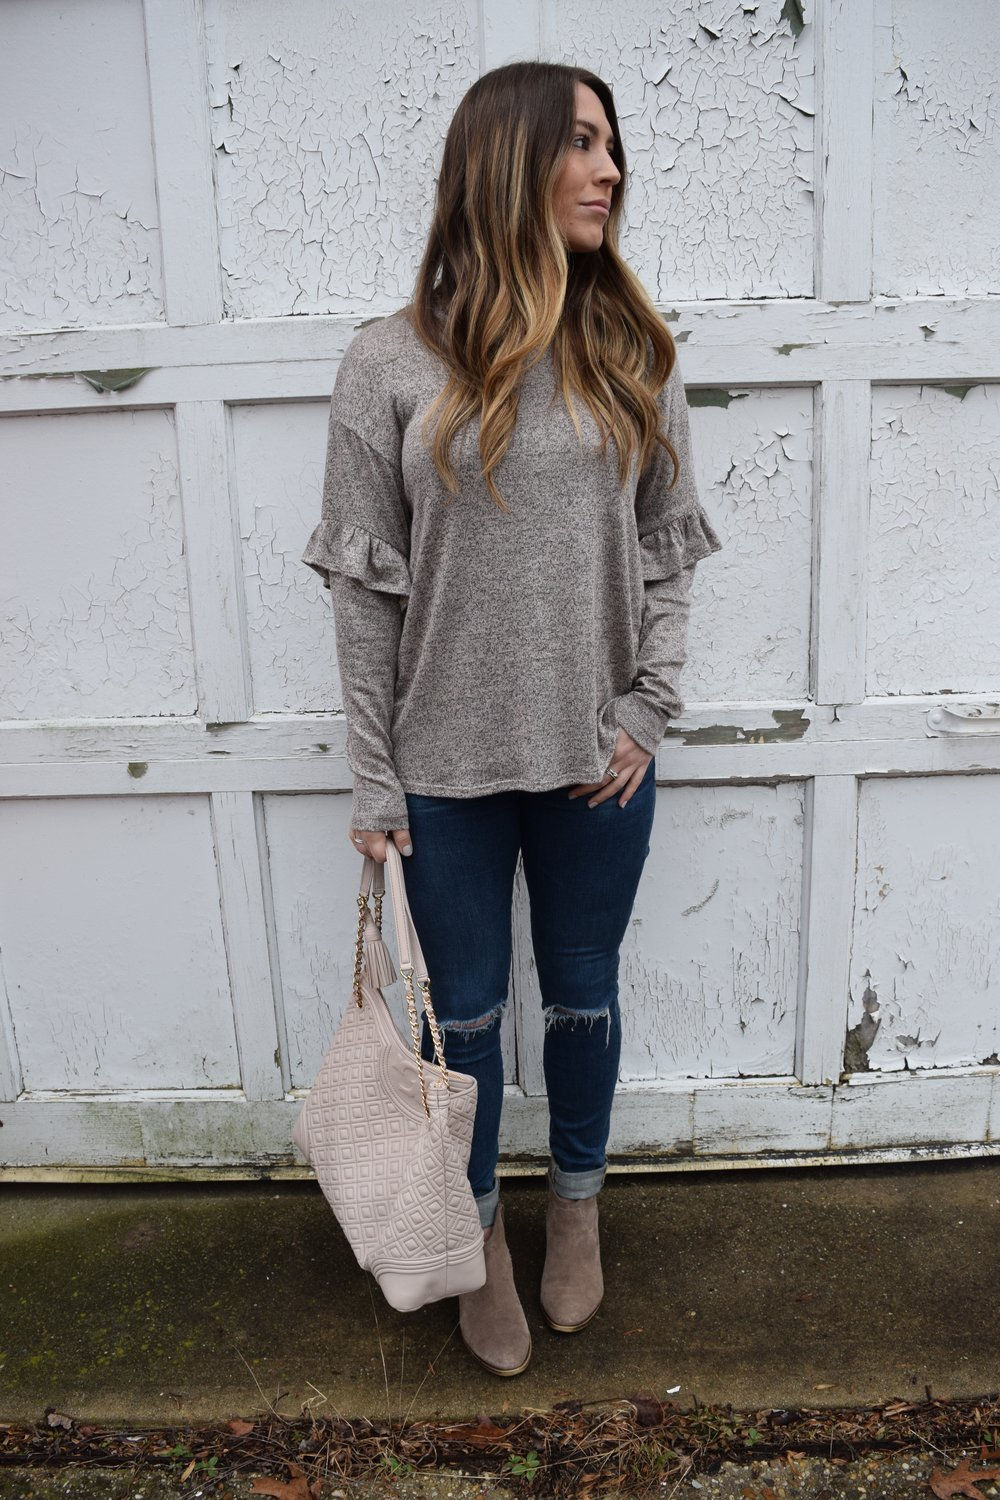 ruffle sleeve top + distressed denim + booties